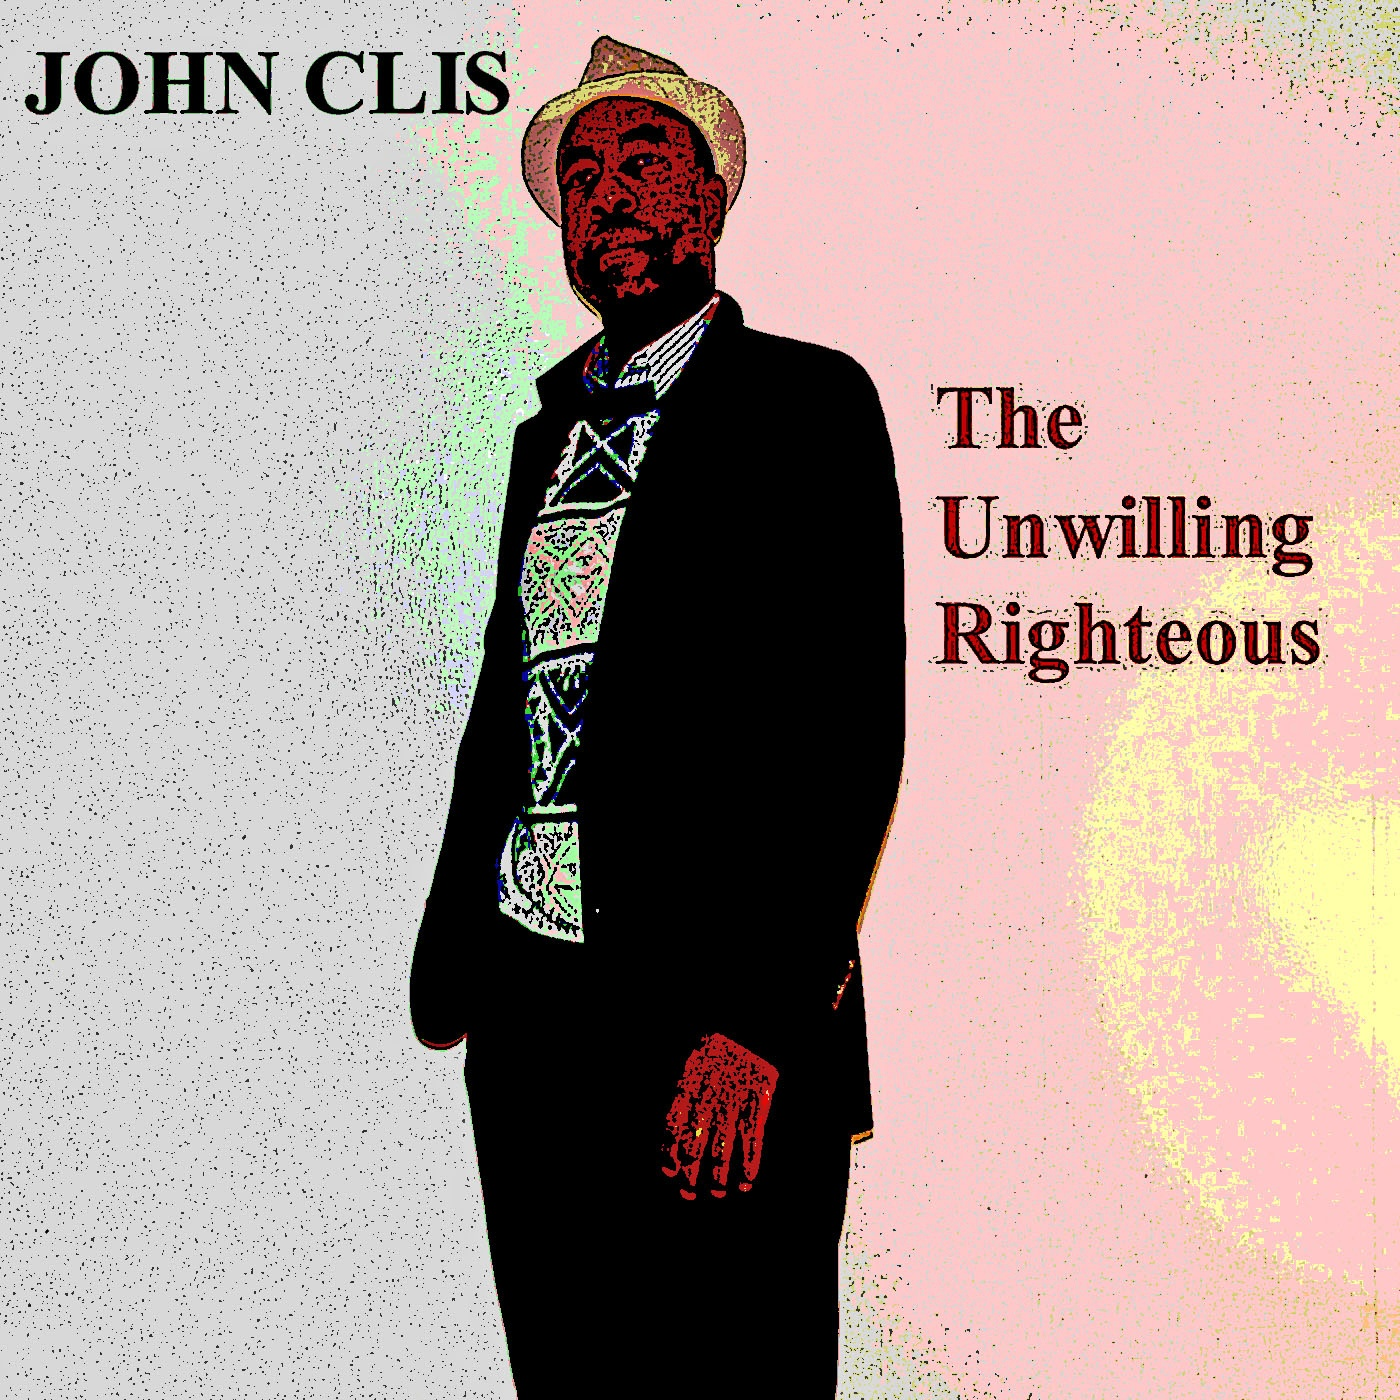 https://0201.nccdn.net/4_2/000/000/04b/787/John-Clis---The-Unwilling-Righteous---Photo-1400x1400.jpg